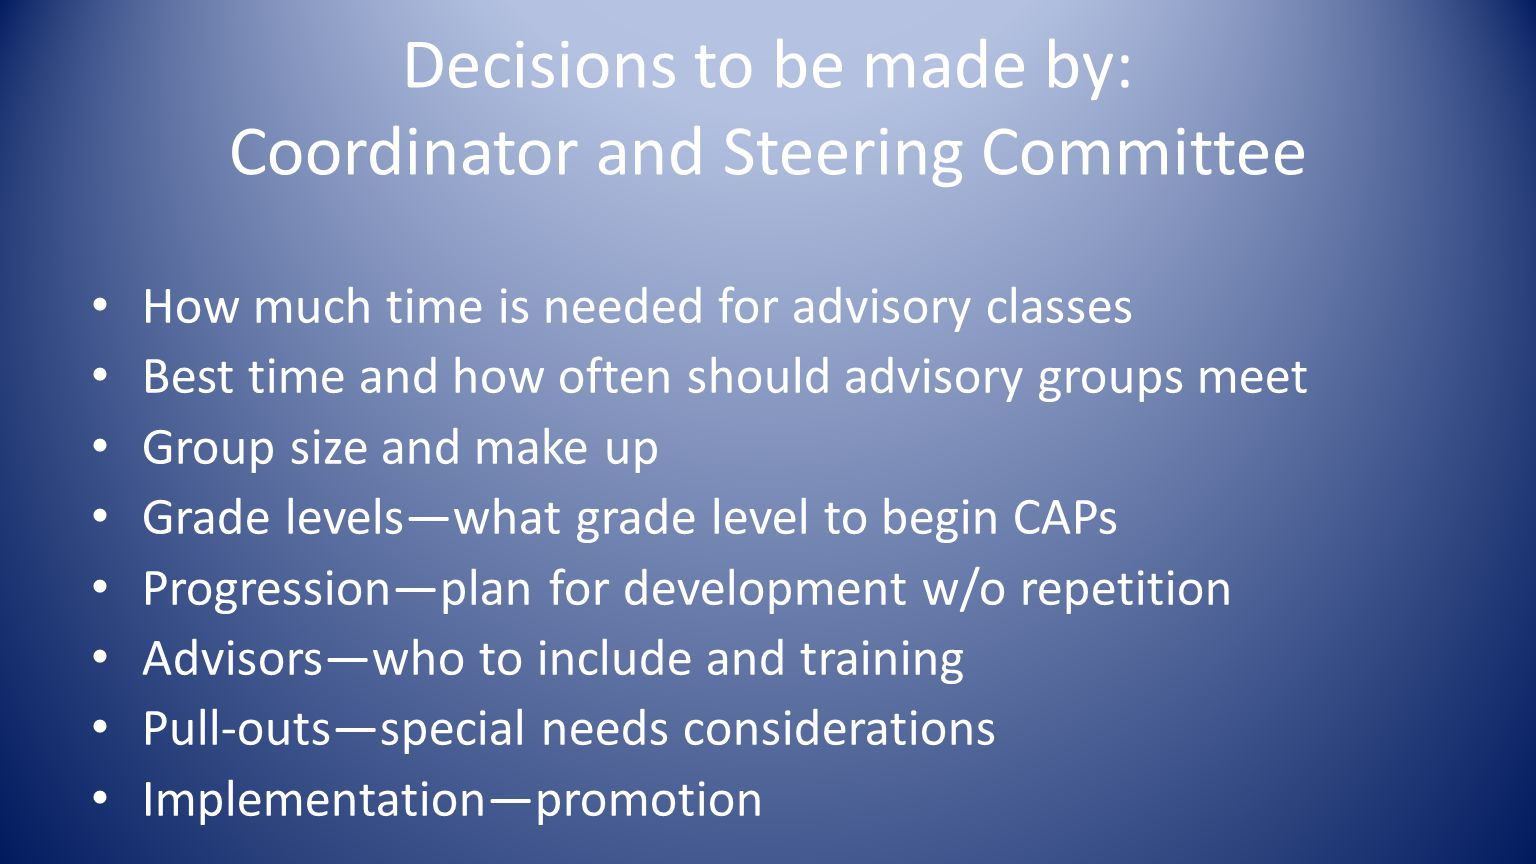 Decisions to be made by: Coordinator and Steering Committee How much time is needed for advisory classes Best time and how often should advisory groups meet Group size and make up Grade levels—what grade level to begin CAPs Progression—plan for development w/o repetition Advisors—who to include and training Pull-outs—special needs considerations Implementation—promotion